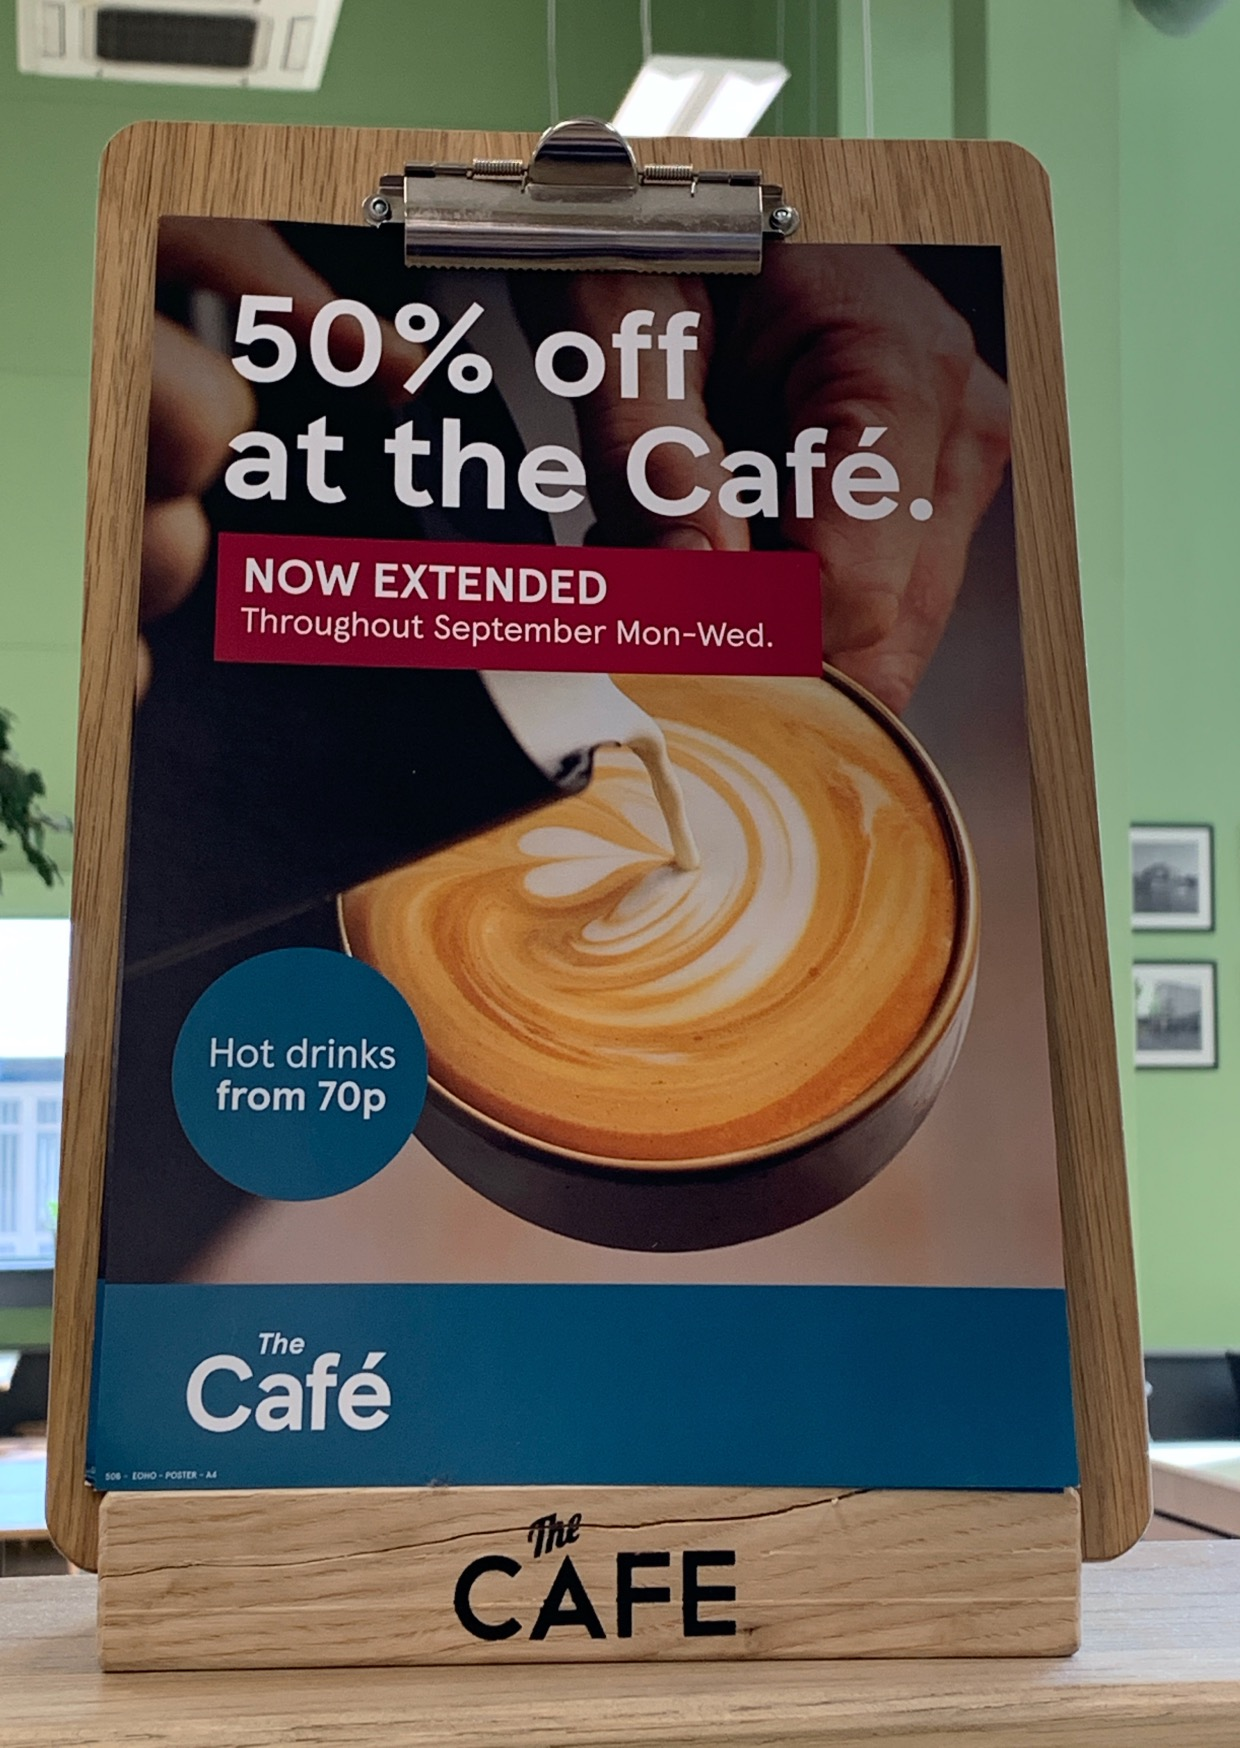 50% off at The Cafe, Tesco